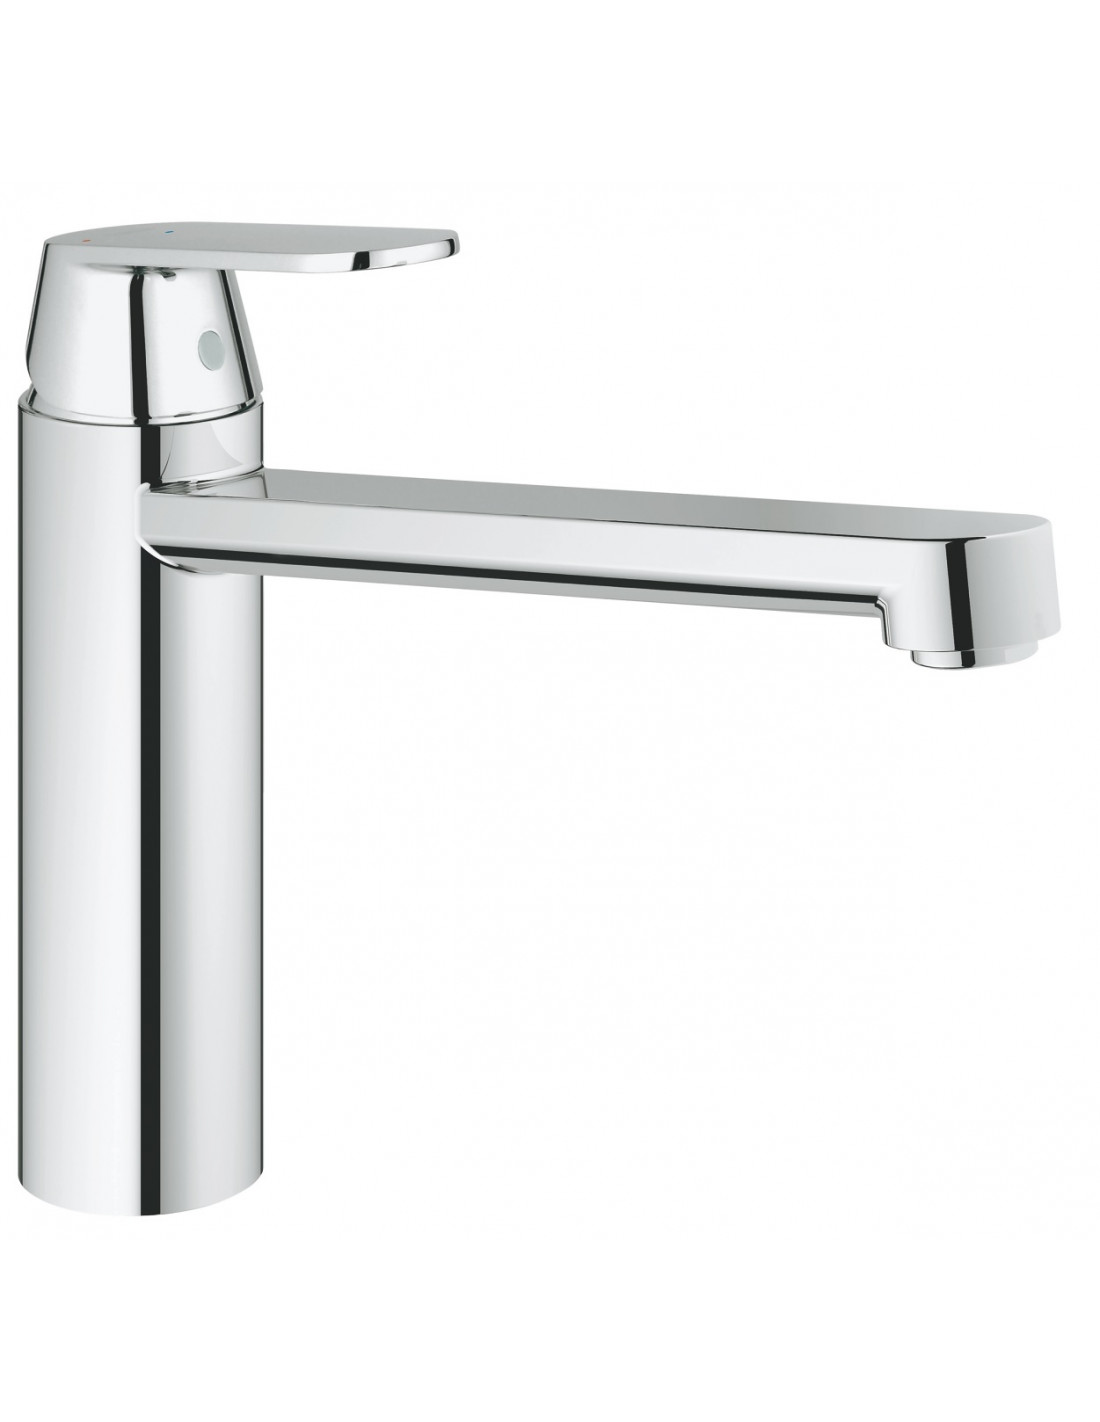 Mitigeur Grohe Evier Grohe Mitigeur évier Eurosmart Cosmopolitain 30199000